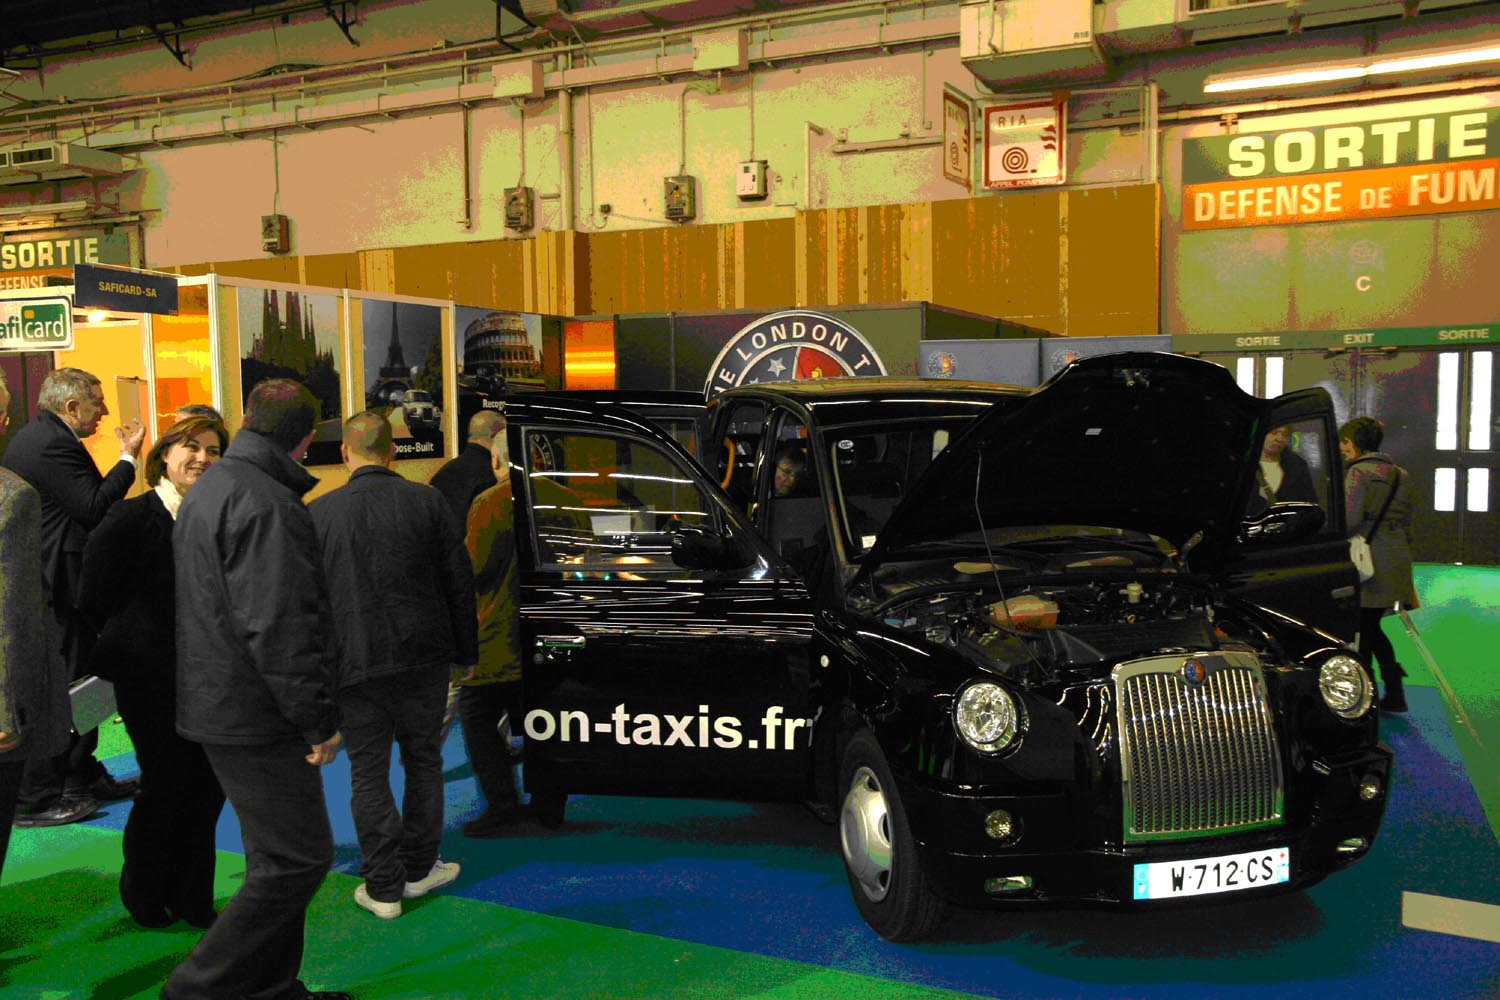 London_Taxis_Paris.jpg